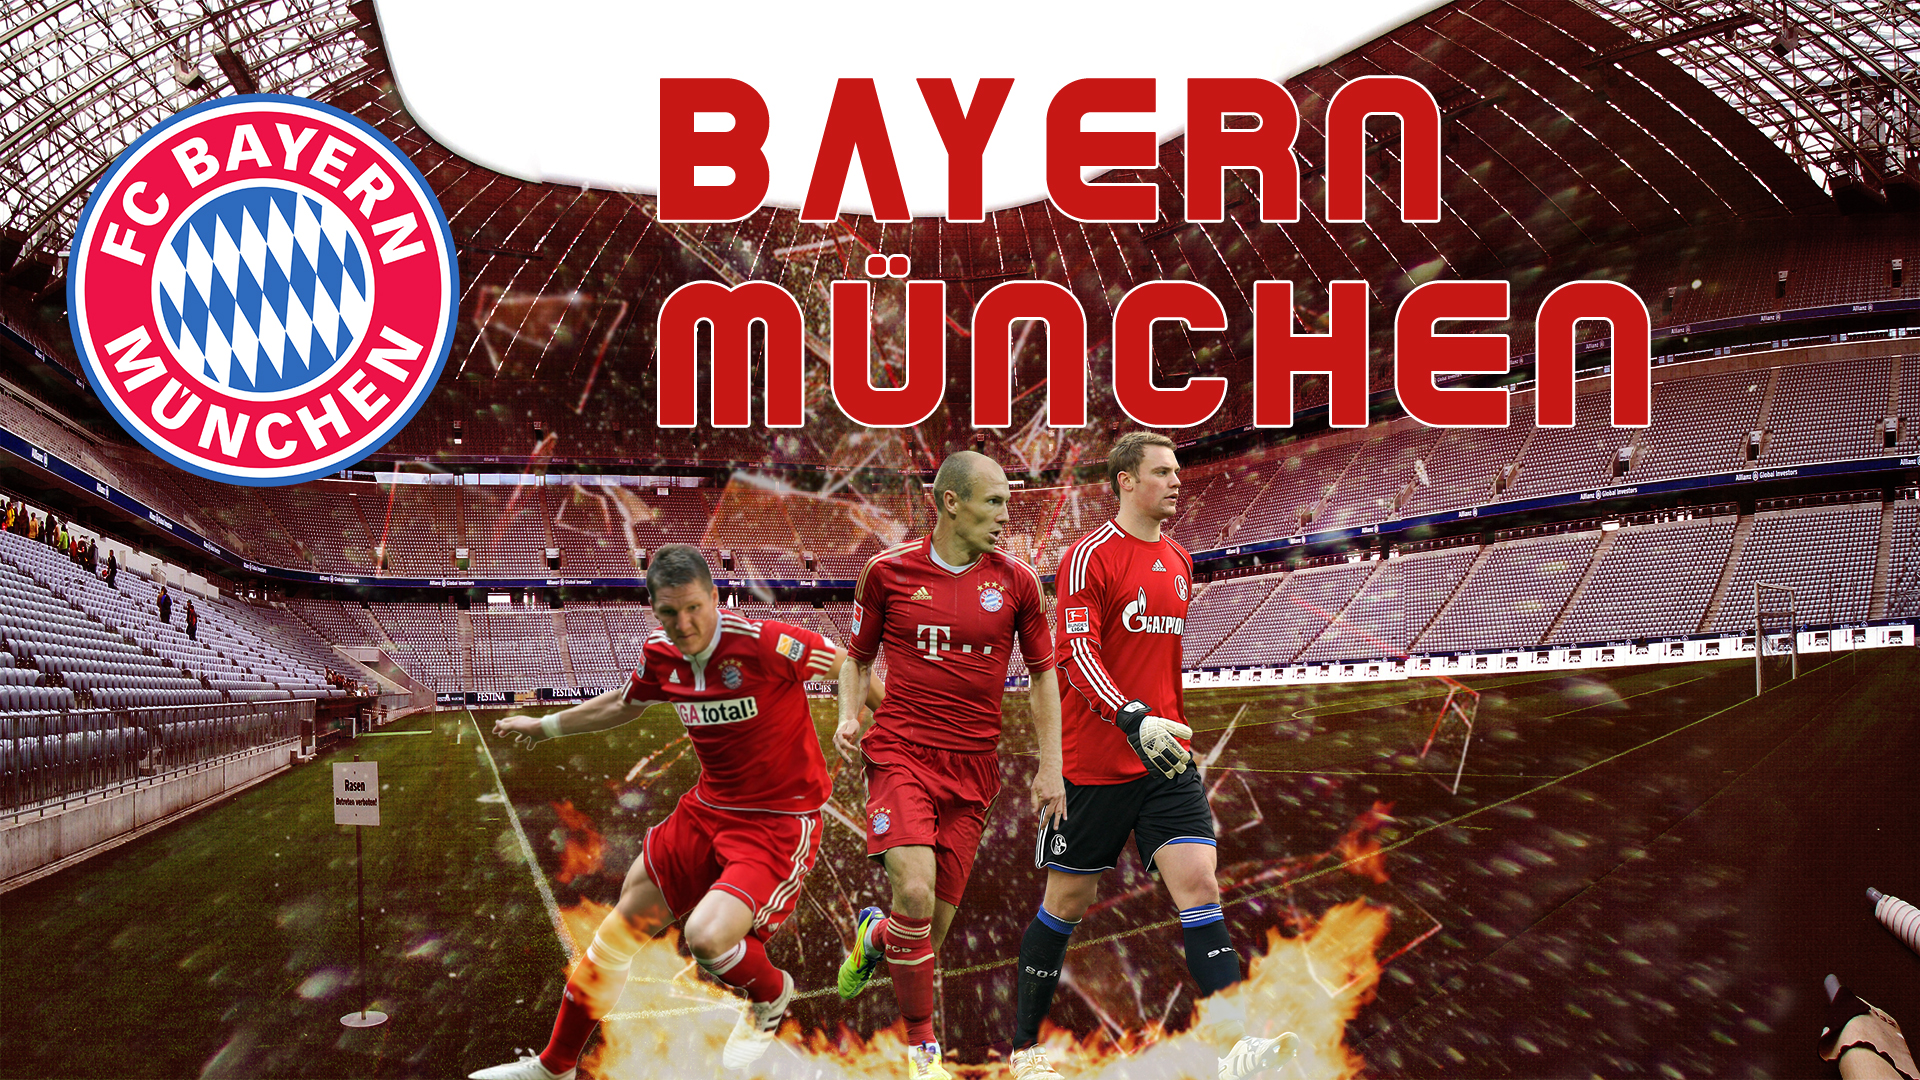 Bayern Munich Wallpapers Free 1080p